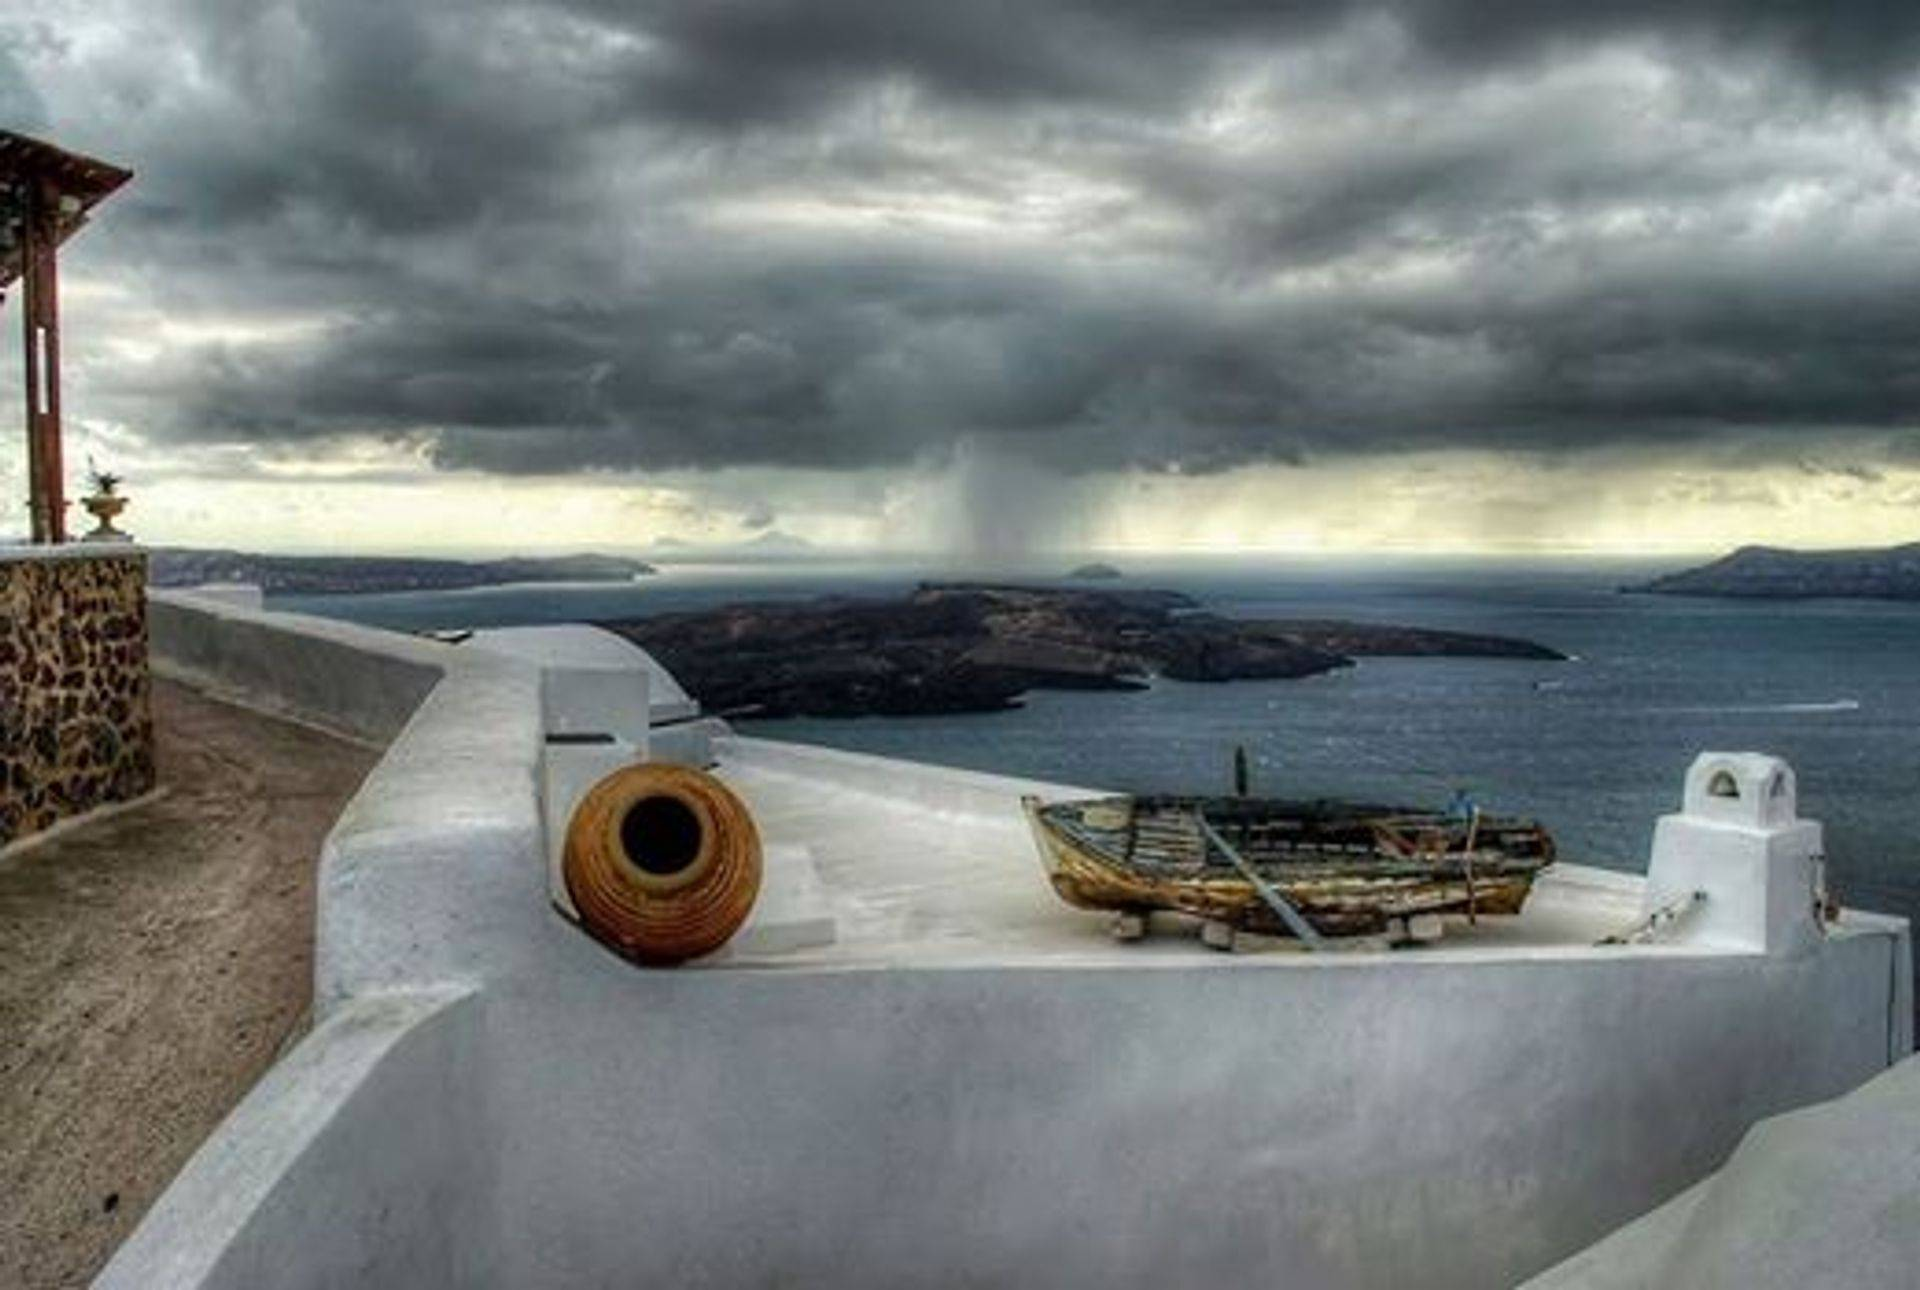 Winter Grey on the Greek islands, January 2015